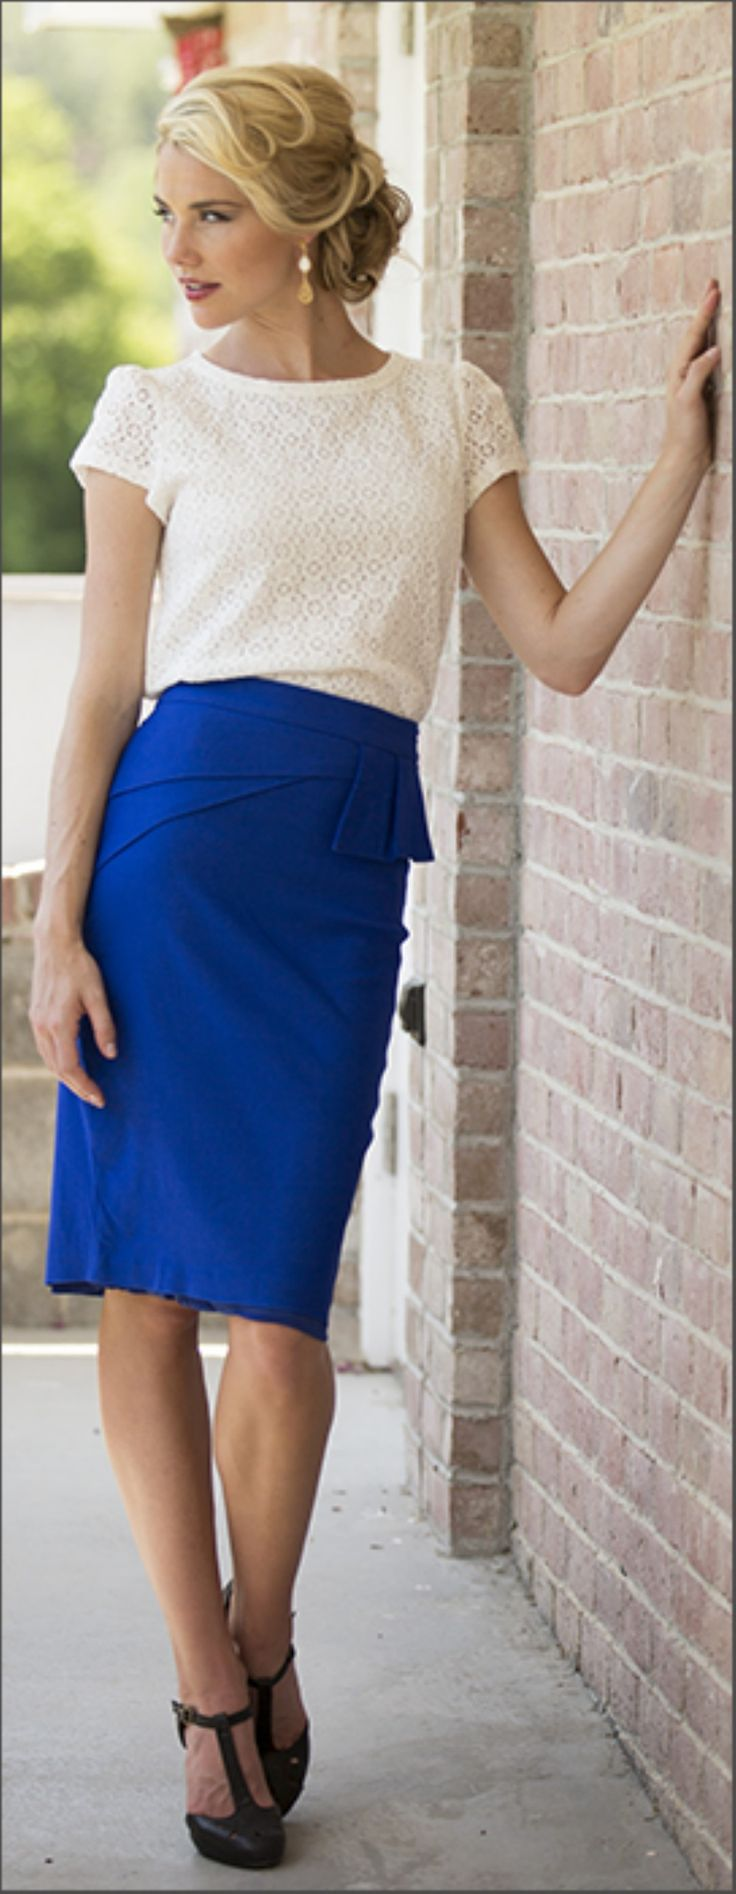 Breathtaking 29 Pretty Cobalt Blue Skirt Outfits for Fashionable Ladies from http://www.fashionetter.com/2017/04/12/pretty-cobalt-blue-skirt-outfits-for-fashionable-ladies/